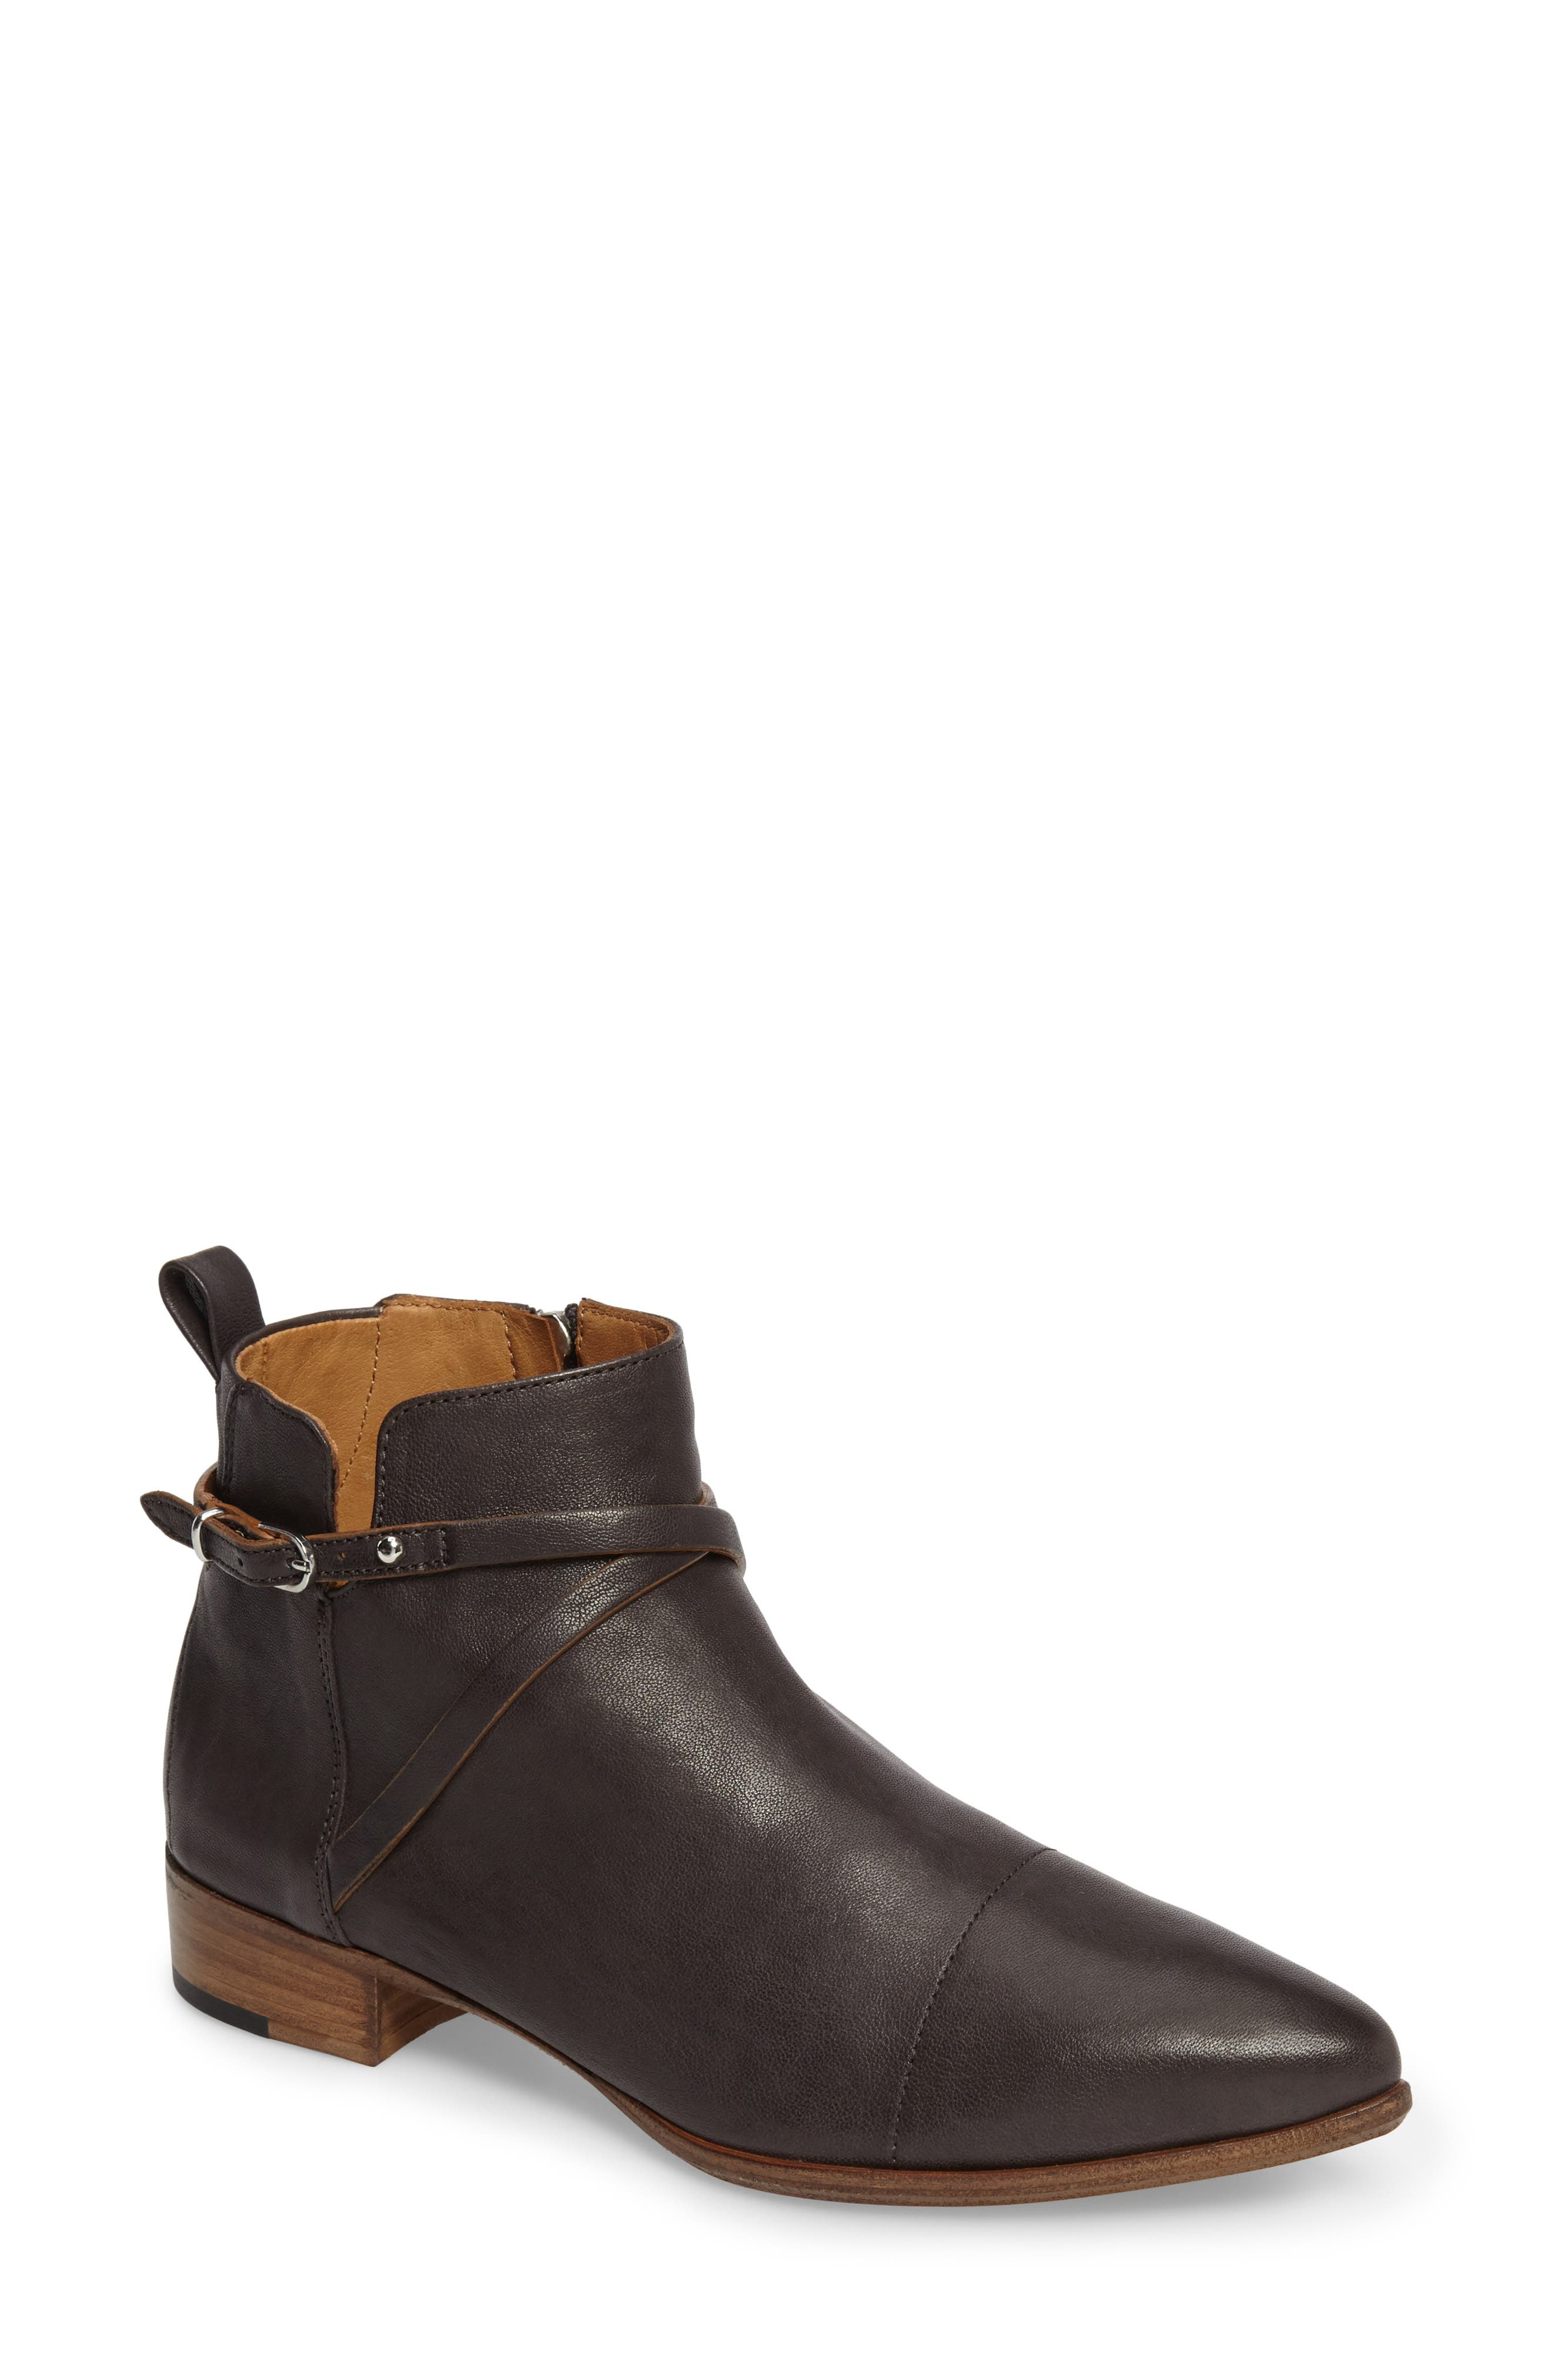 Alberto Fermani 'Mea' Ankle Boot (Women) (Nordstrom Exclusive)